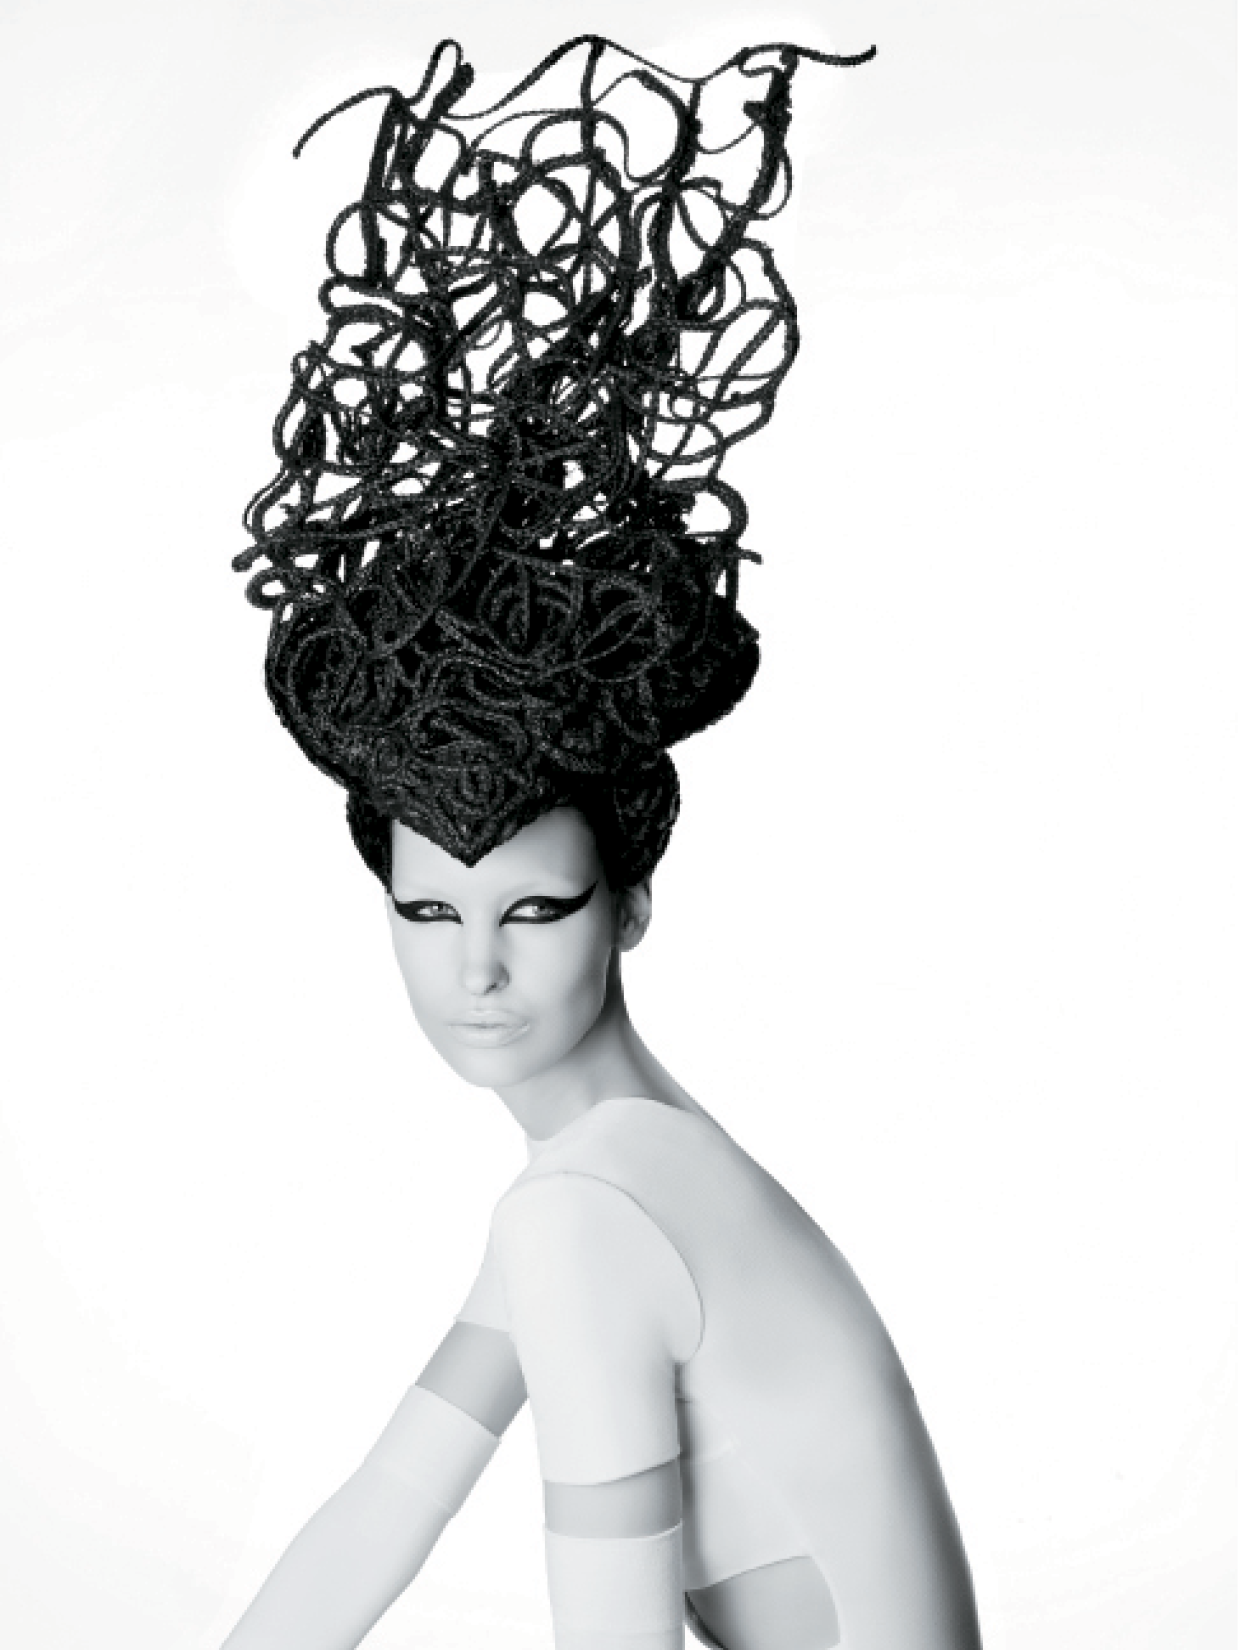 The Smiths placed a fine chicken wire covered in fabric on top of the model's head for the base of this design. They then used dozens of various-sized braided wefts that they glued individually to a flexible wire, intertwined and then glued to the base for a look filled with movement.